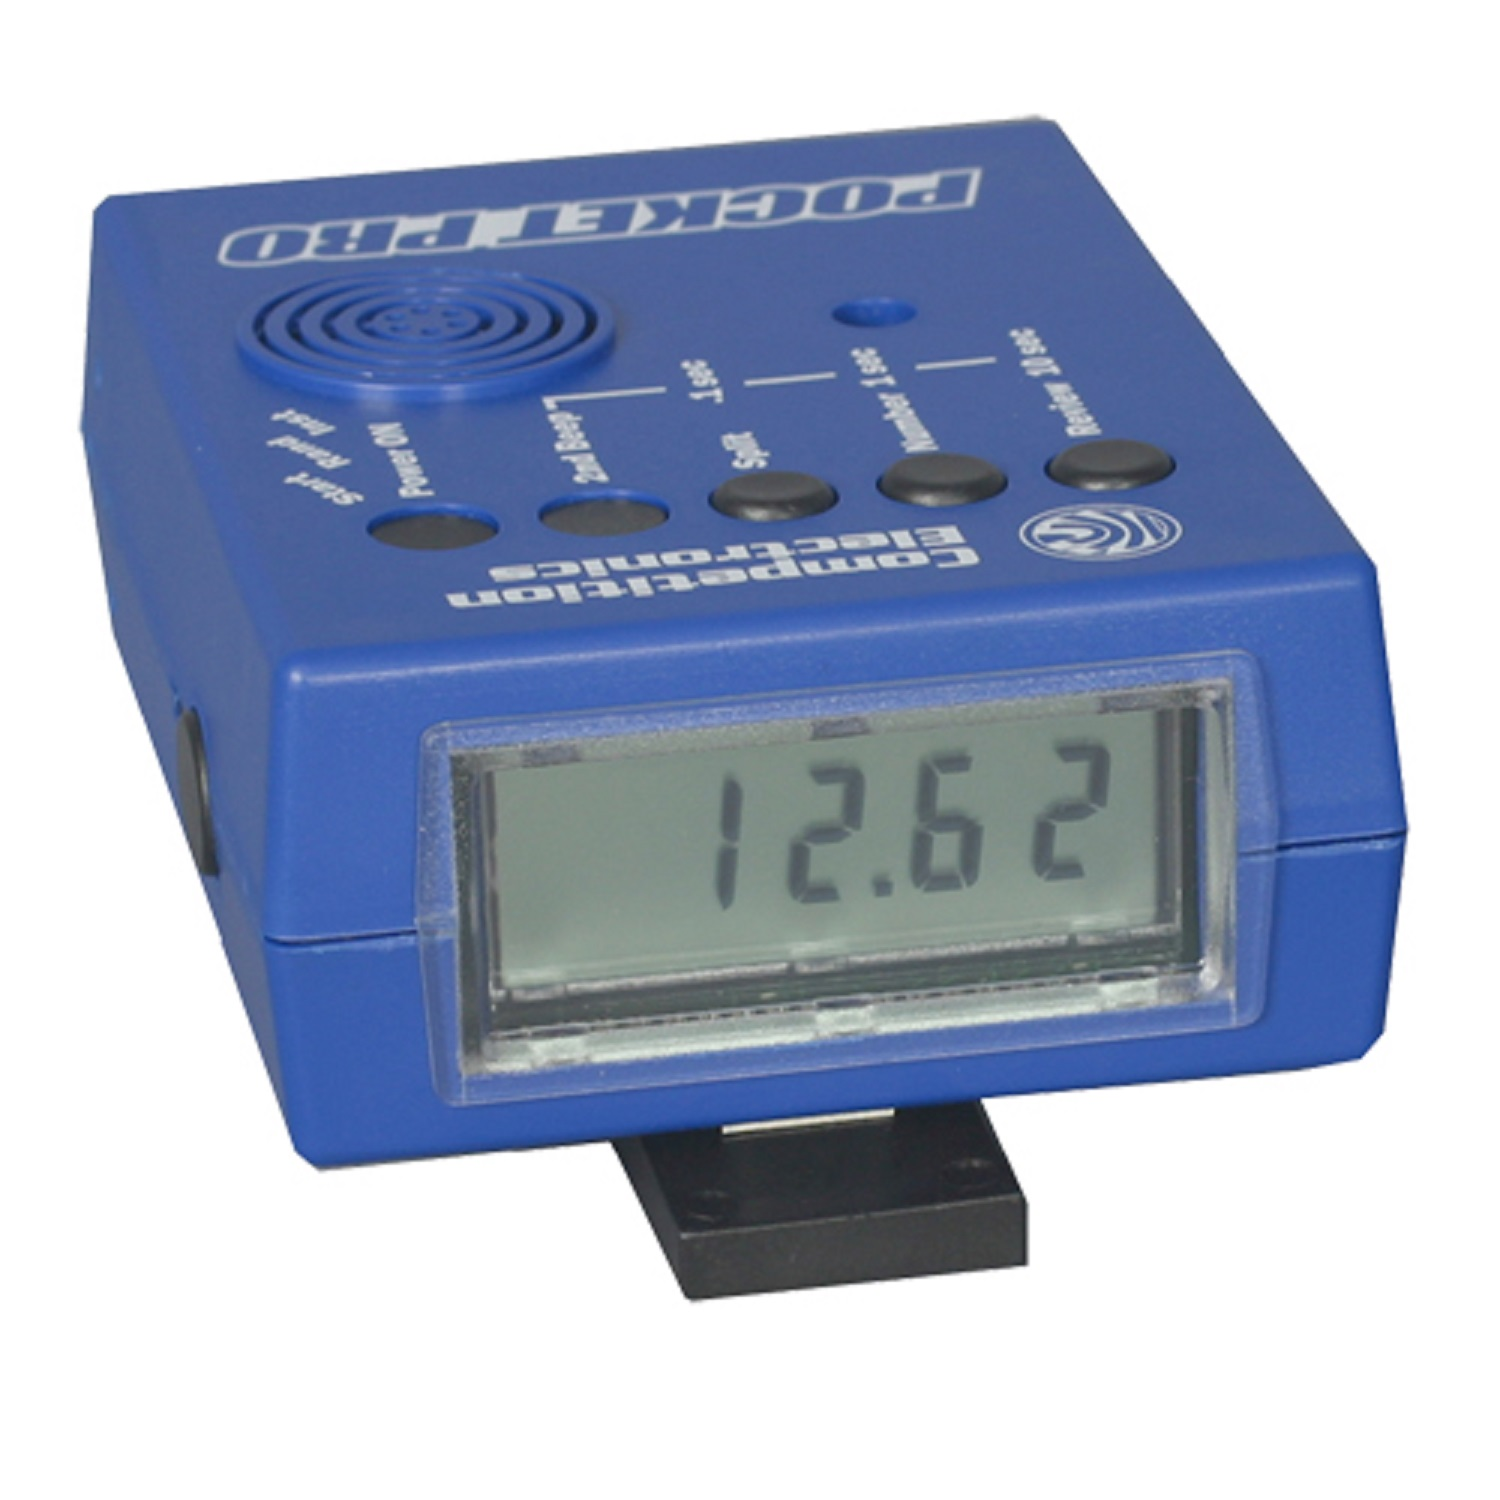 Competition Electronics Pocket Pro Timer, CEI-2800